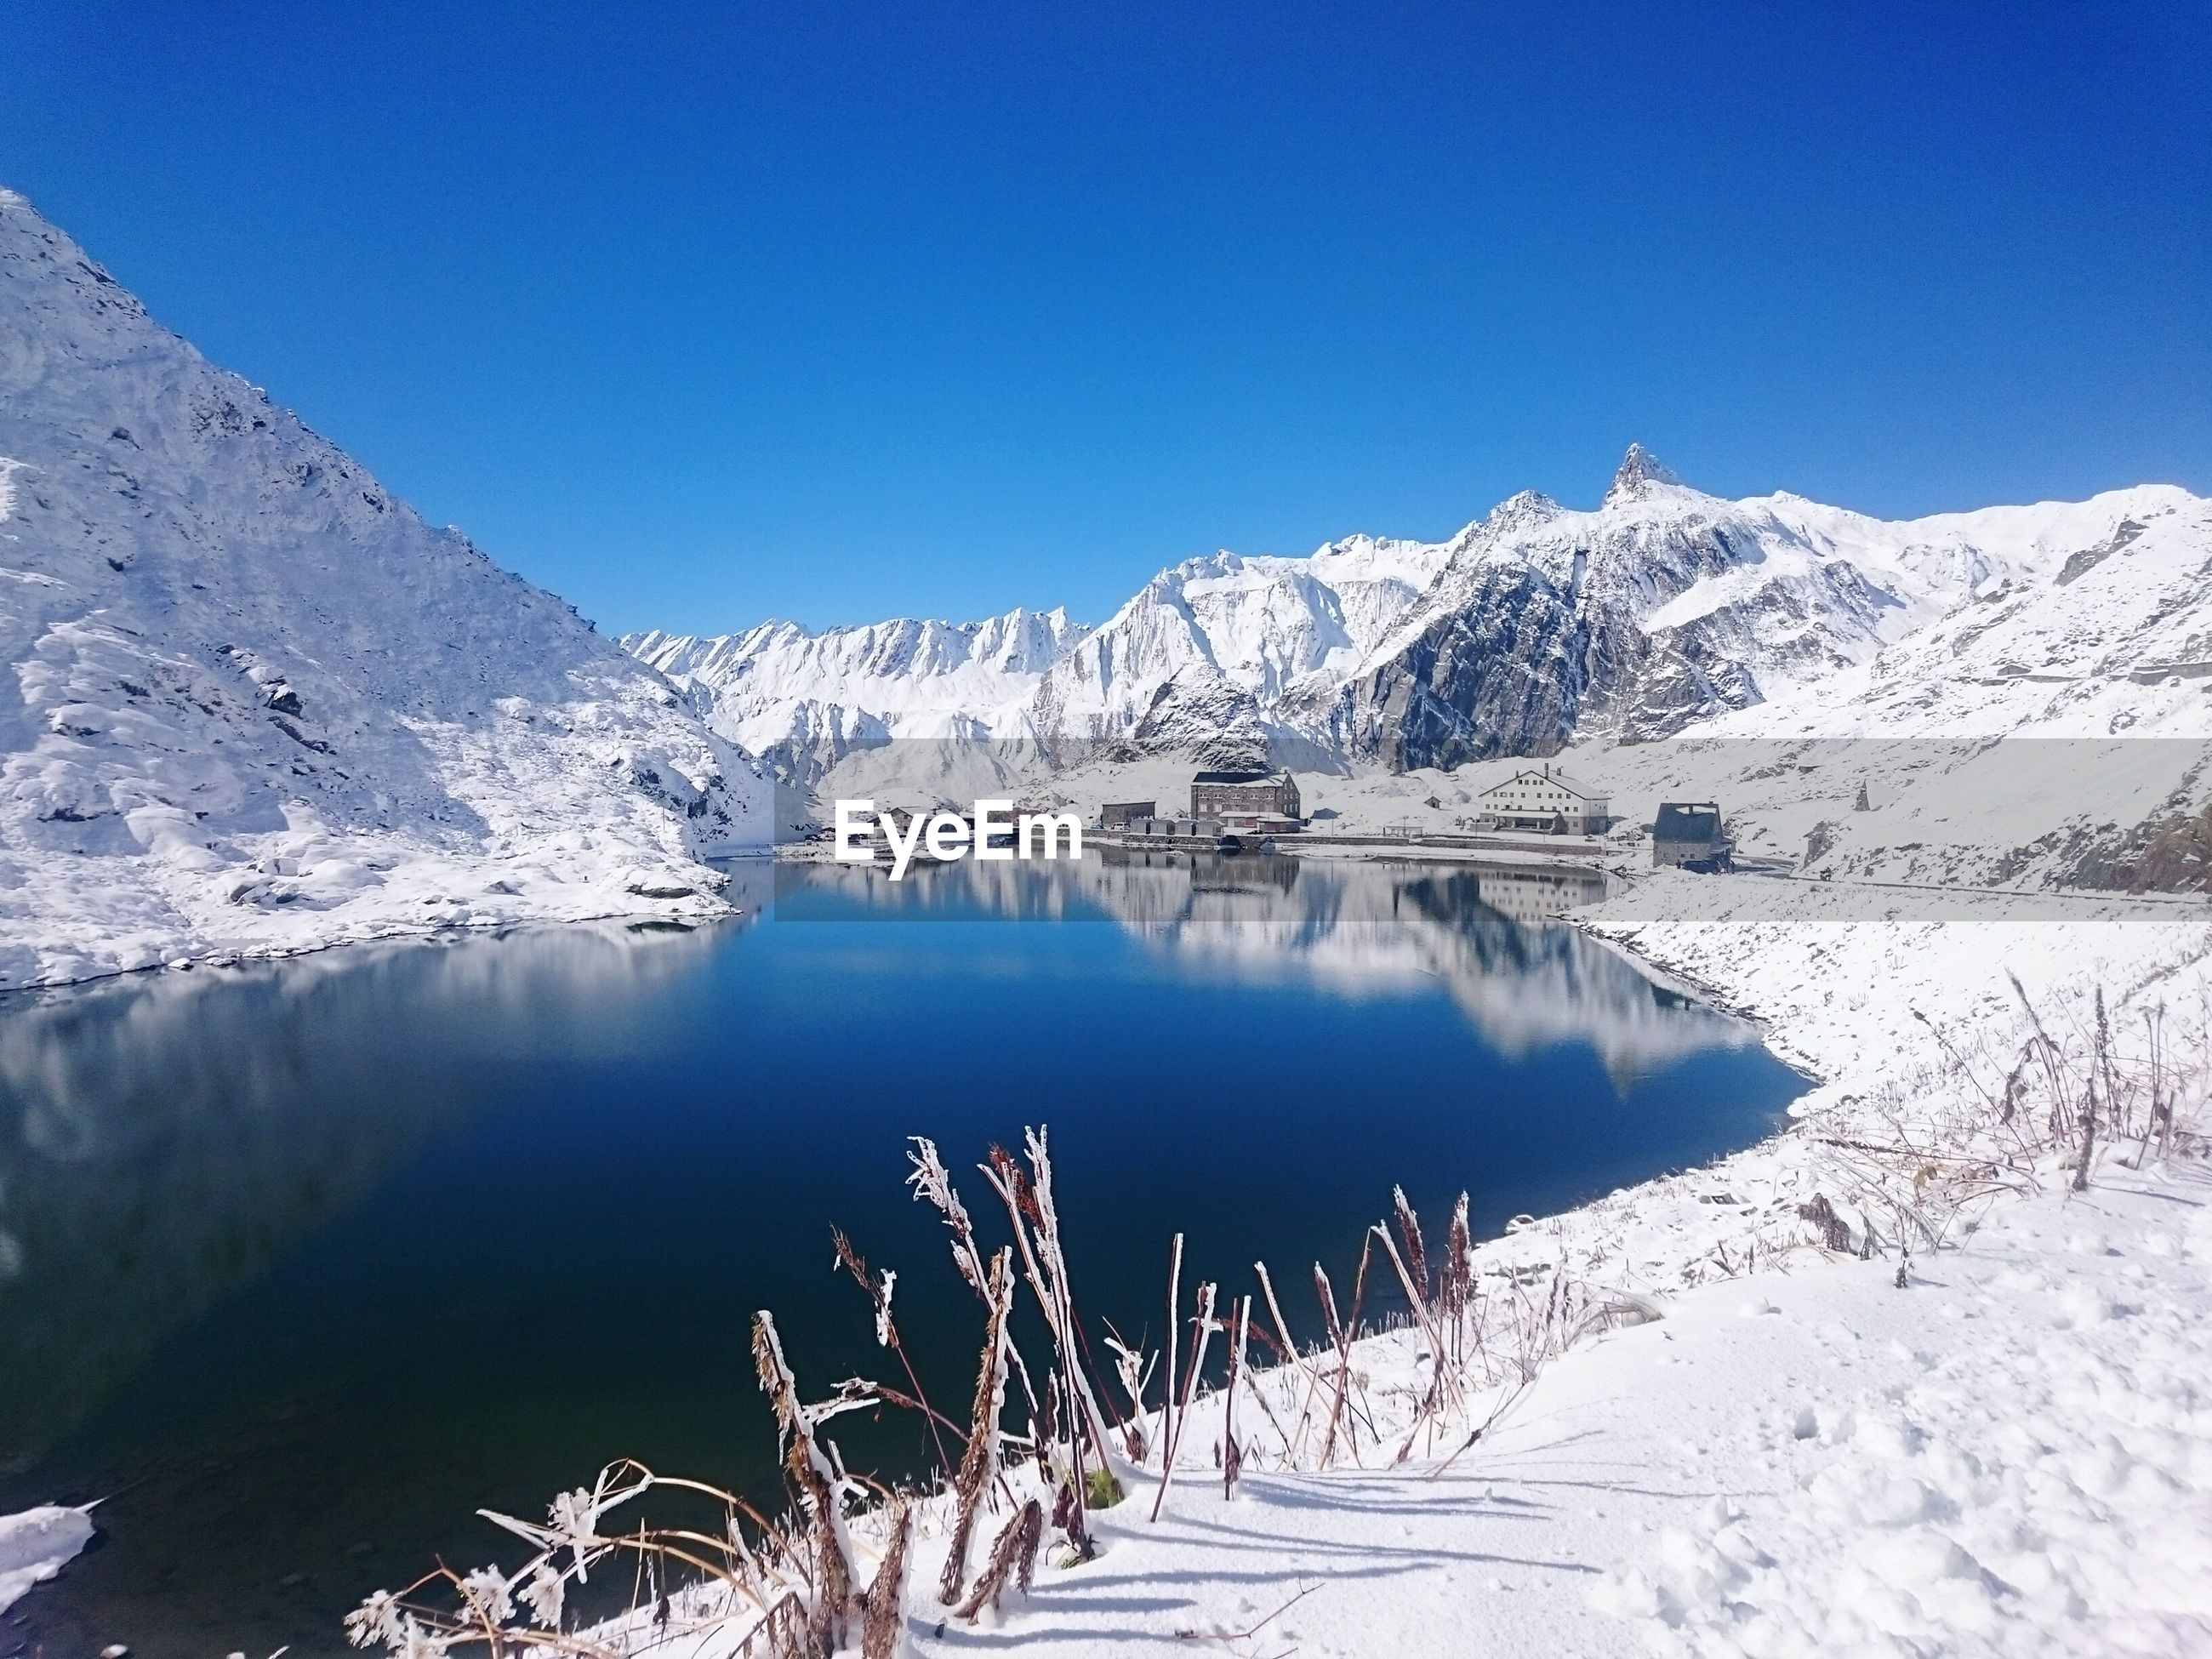 Scenic view of lake amidst snowcapped mountains against clear blue sky